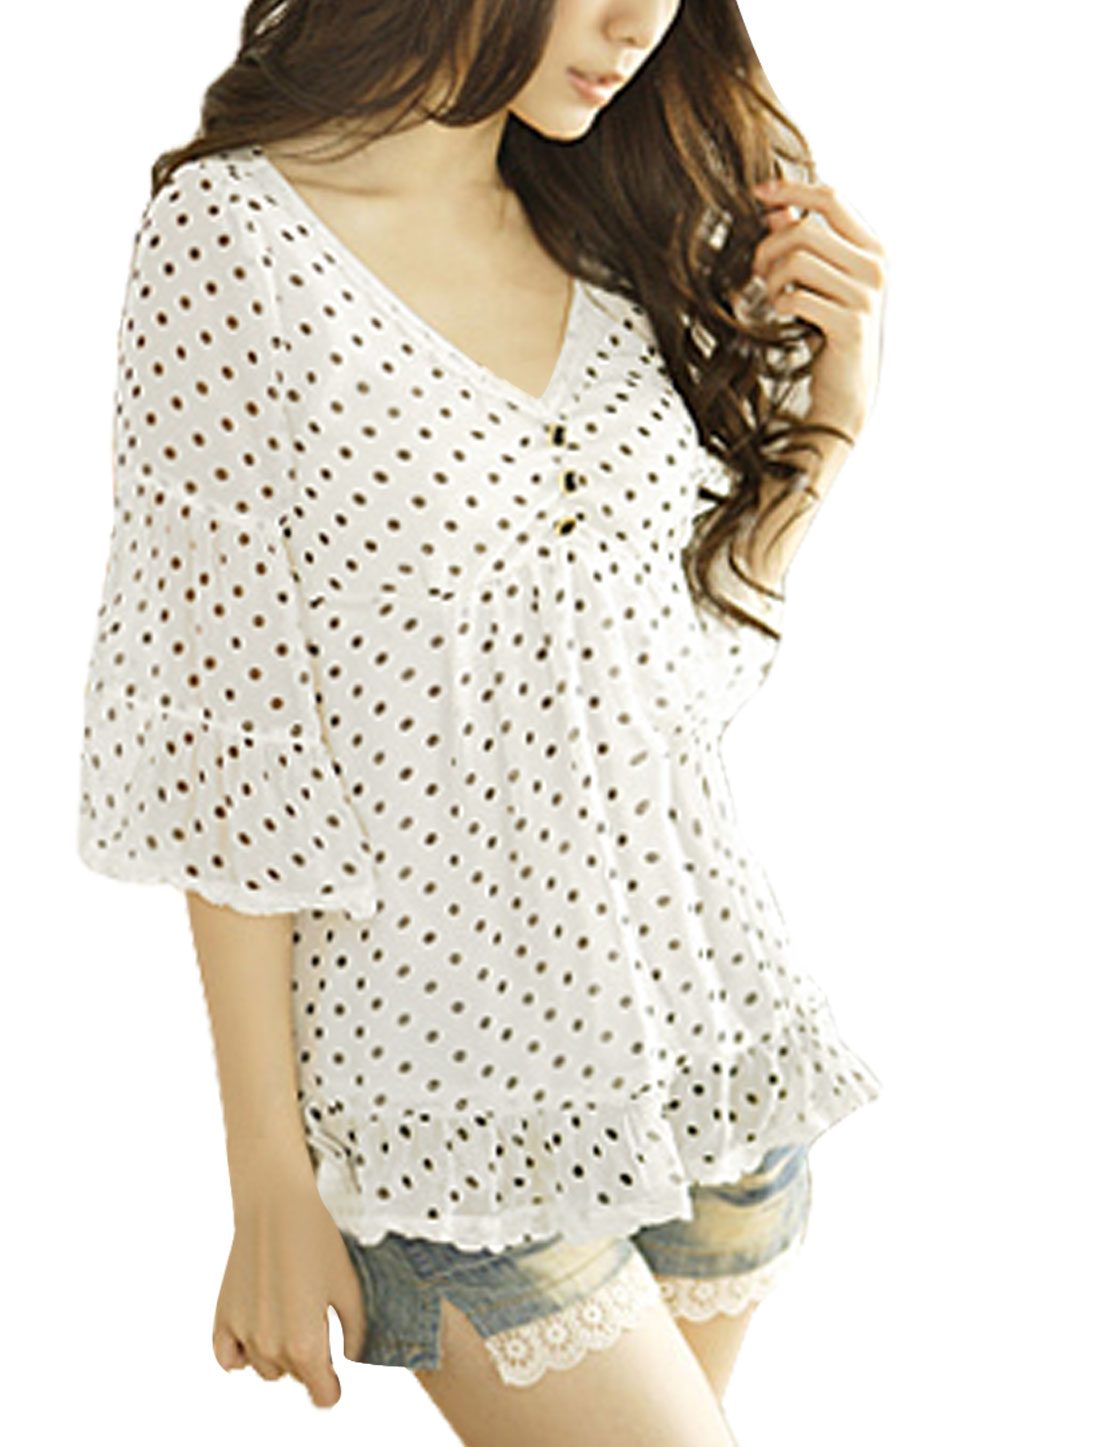 Black Dots Print V Neck White Half Trumpet Sleeve Blouse XS for Women